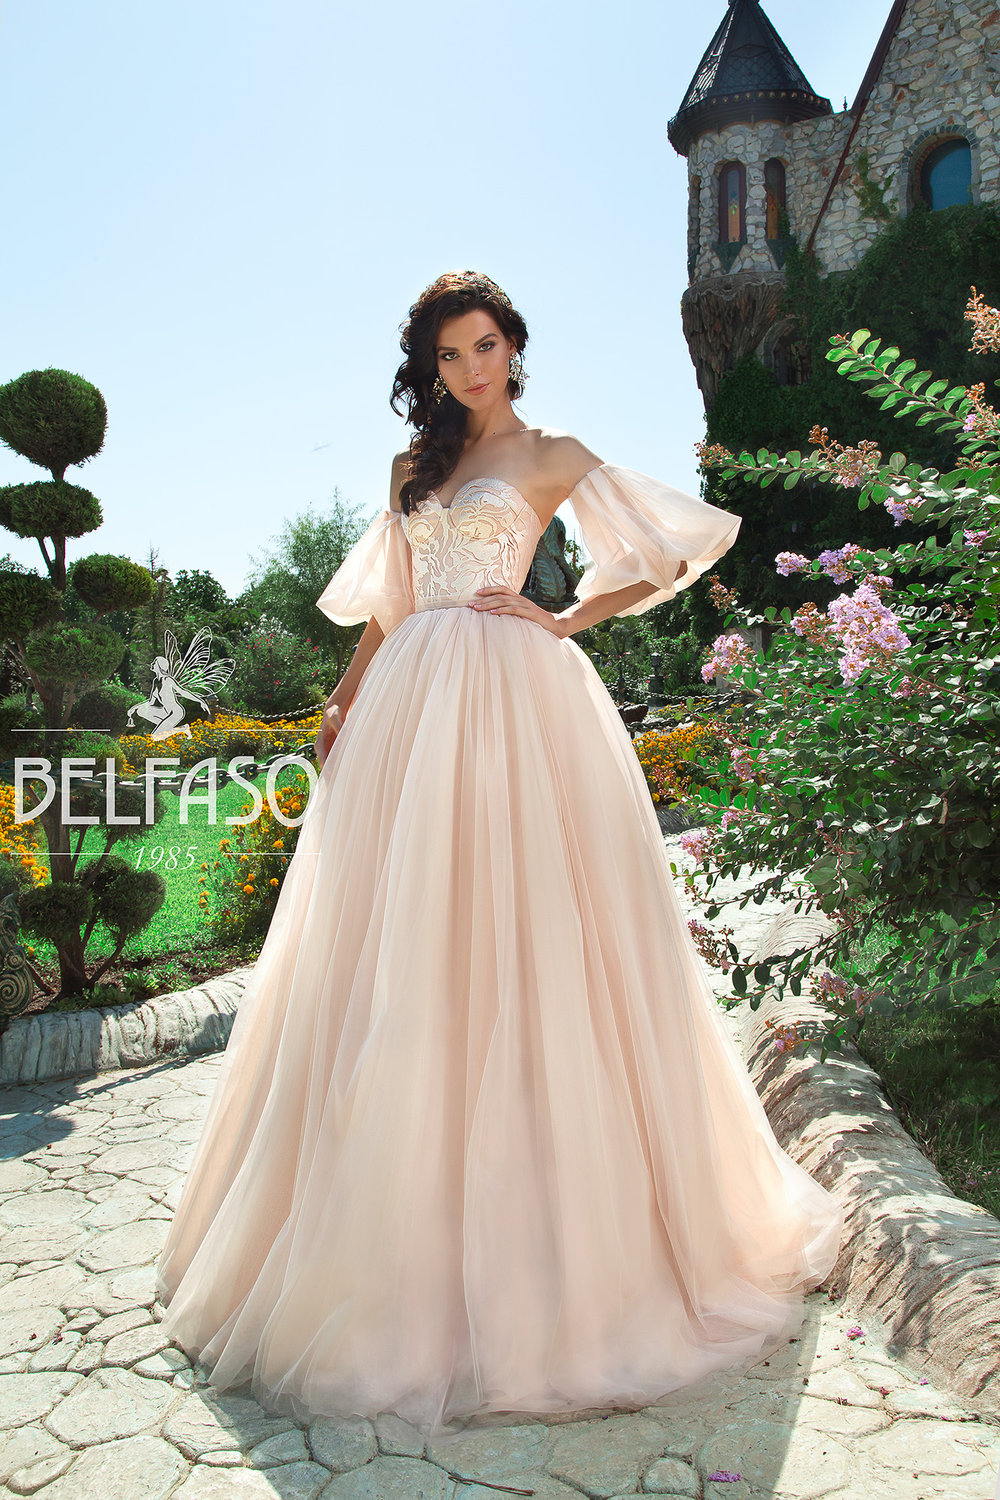 CARAMEL wedding dress by BELFASO